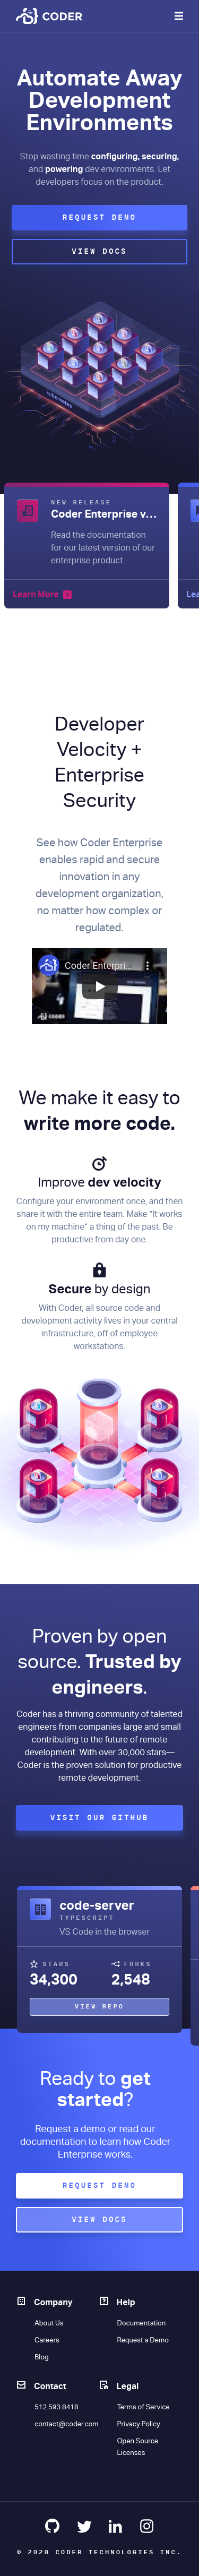 Example of Design for Computers & Electronics, Programming, Mobile Landing Page by coder.com-V2 | Mobile Landing Page Design